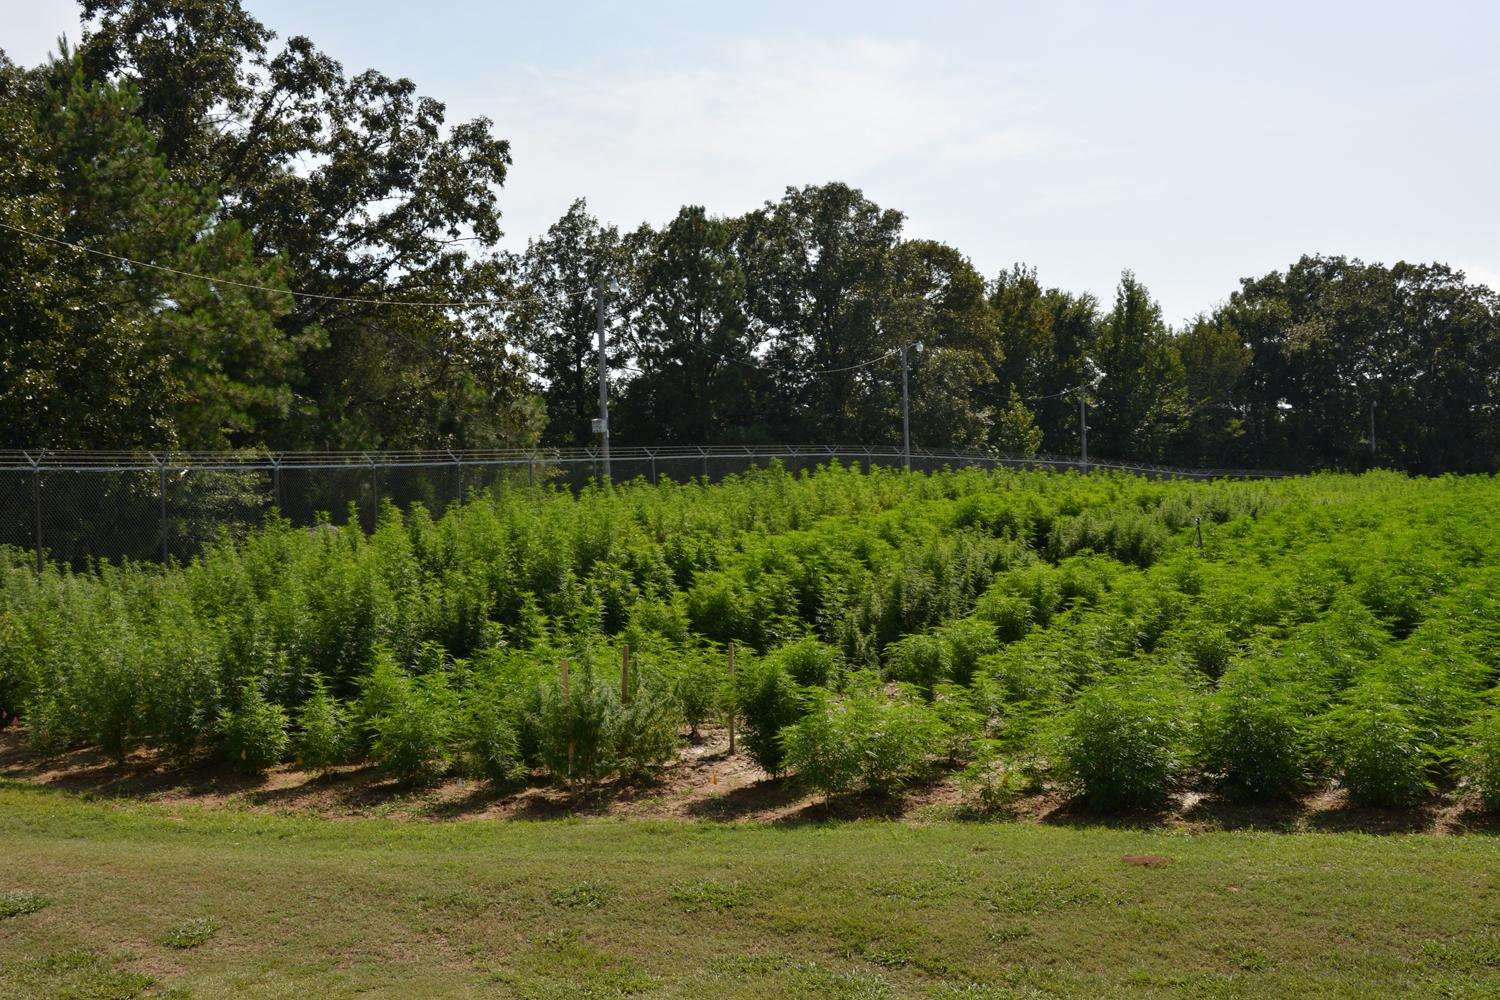 Government marijuana farm outdoor